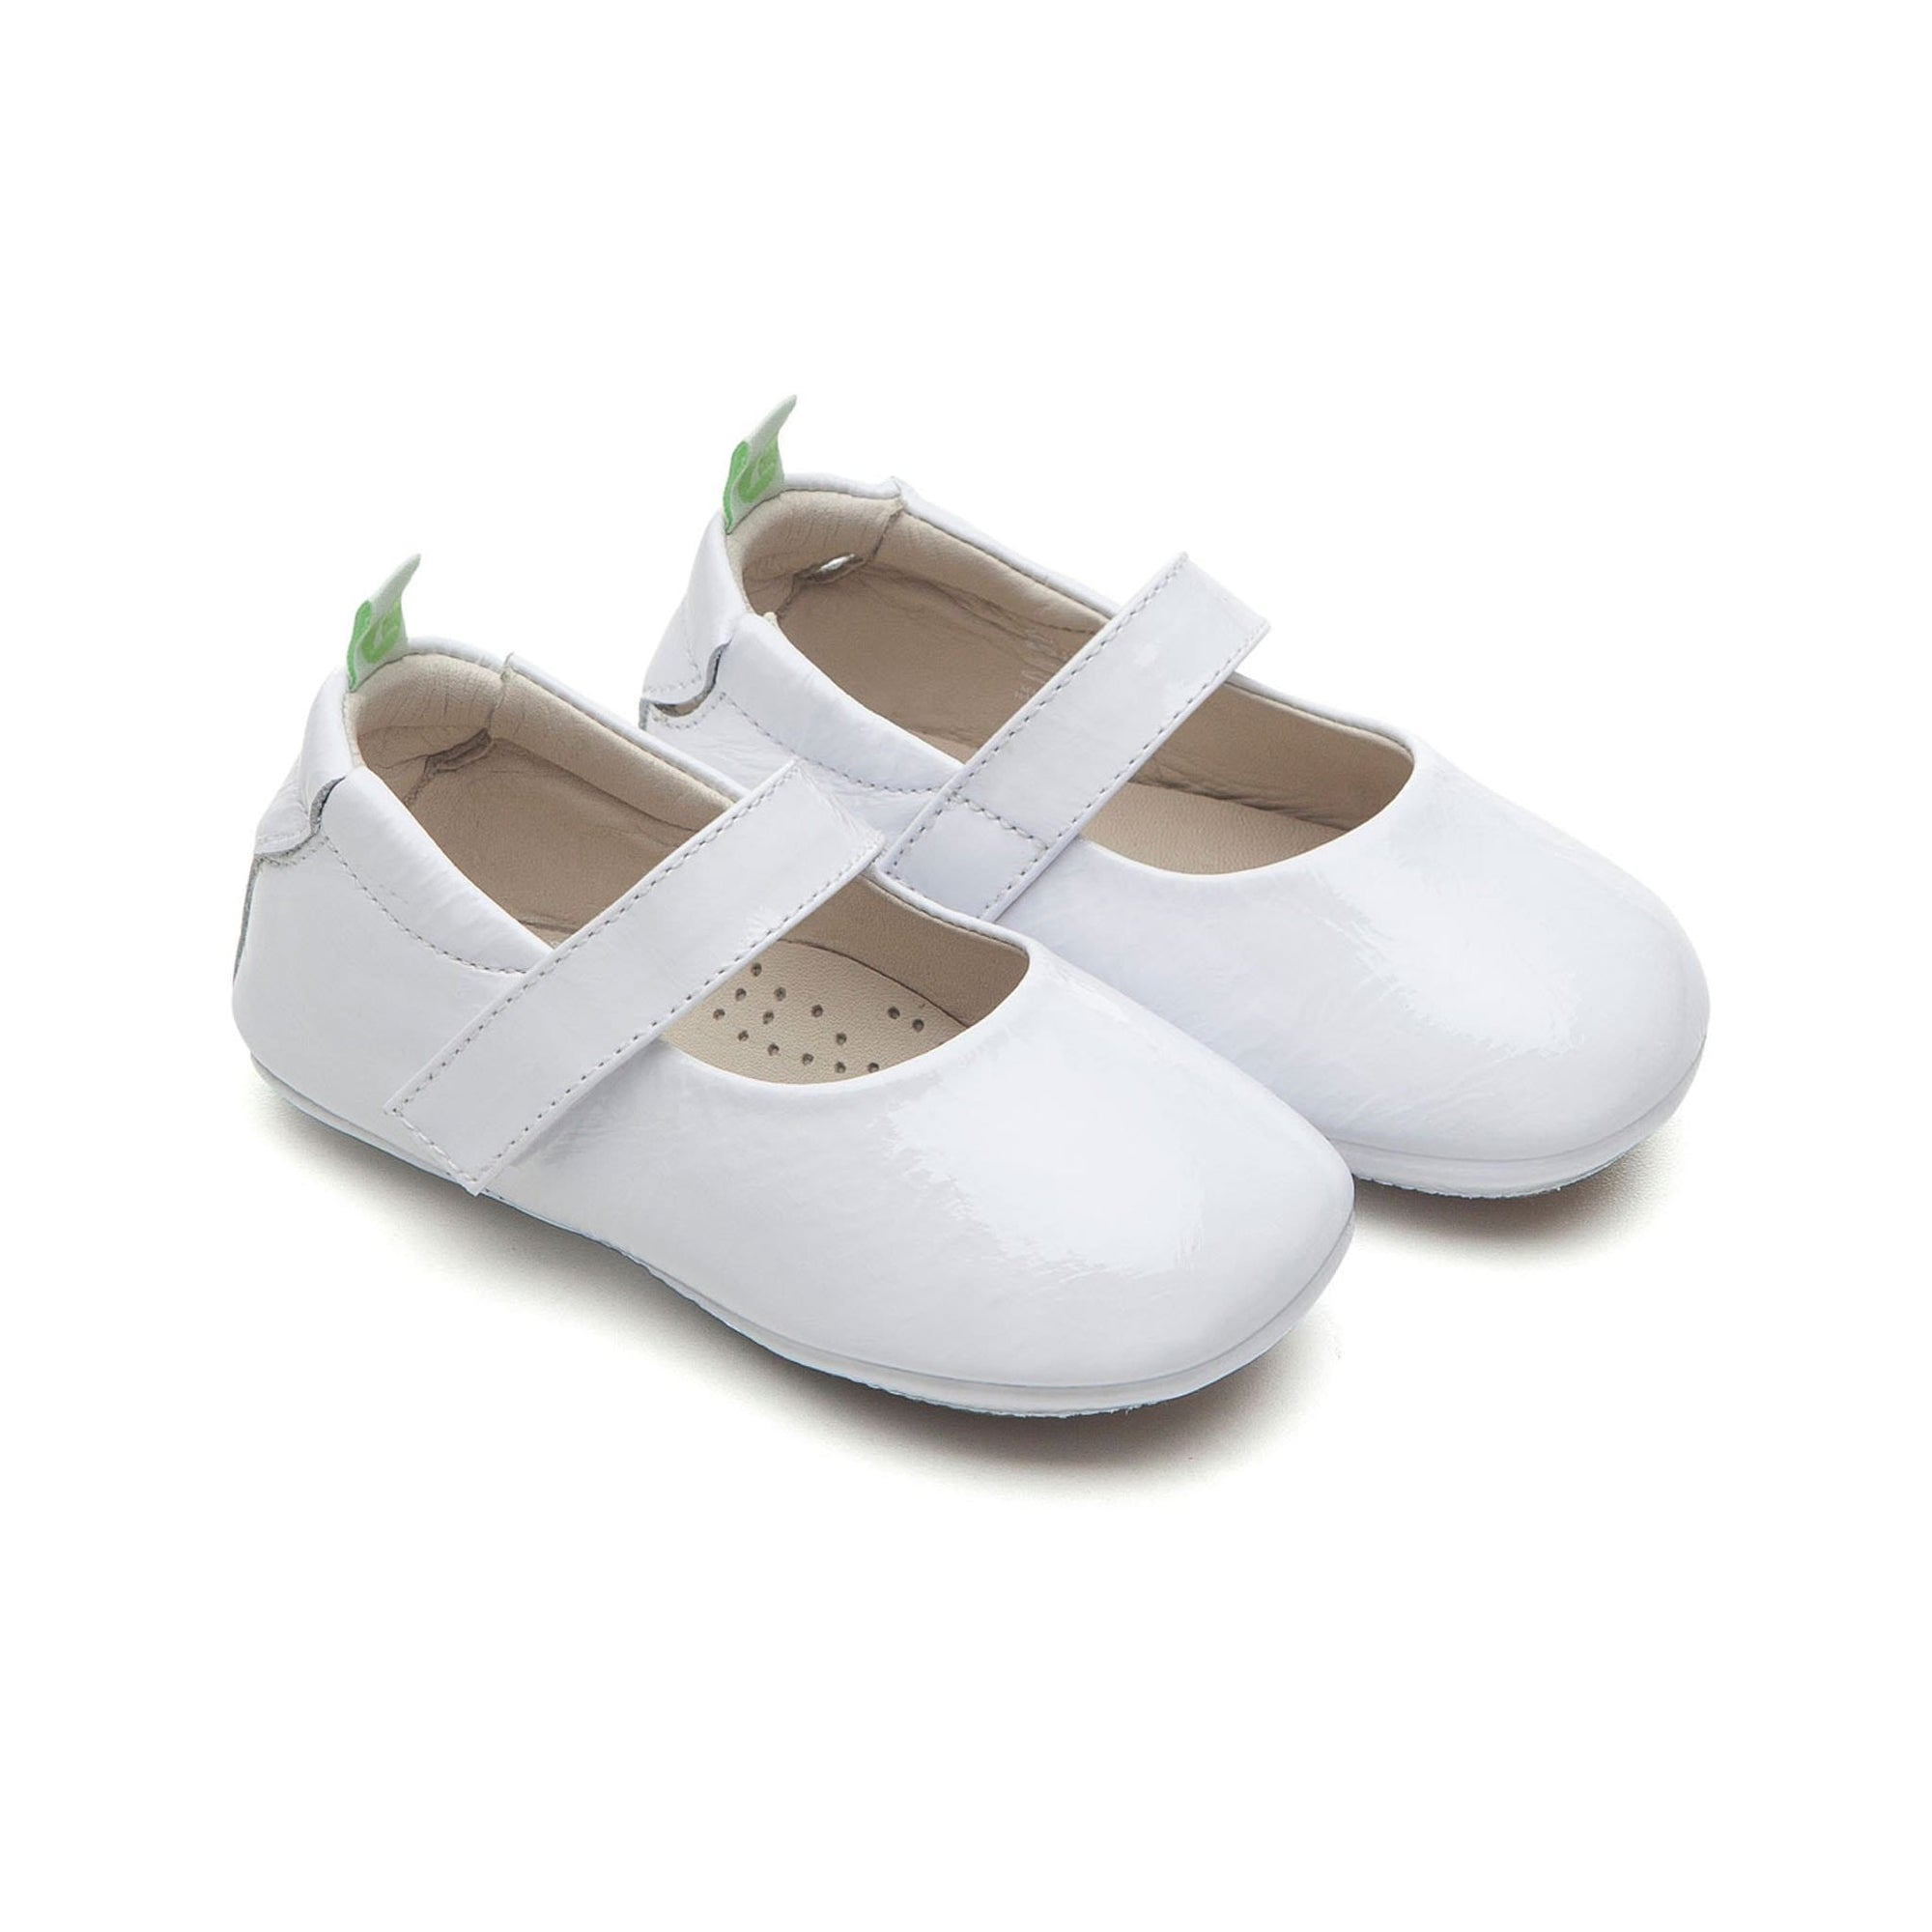 Tip Toey Joey Mary Janes Dolly Patent White